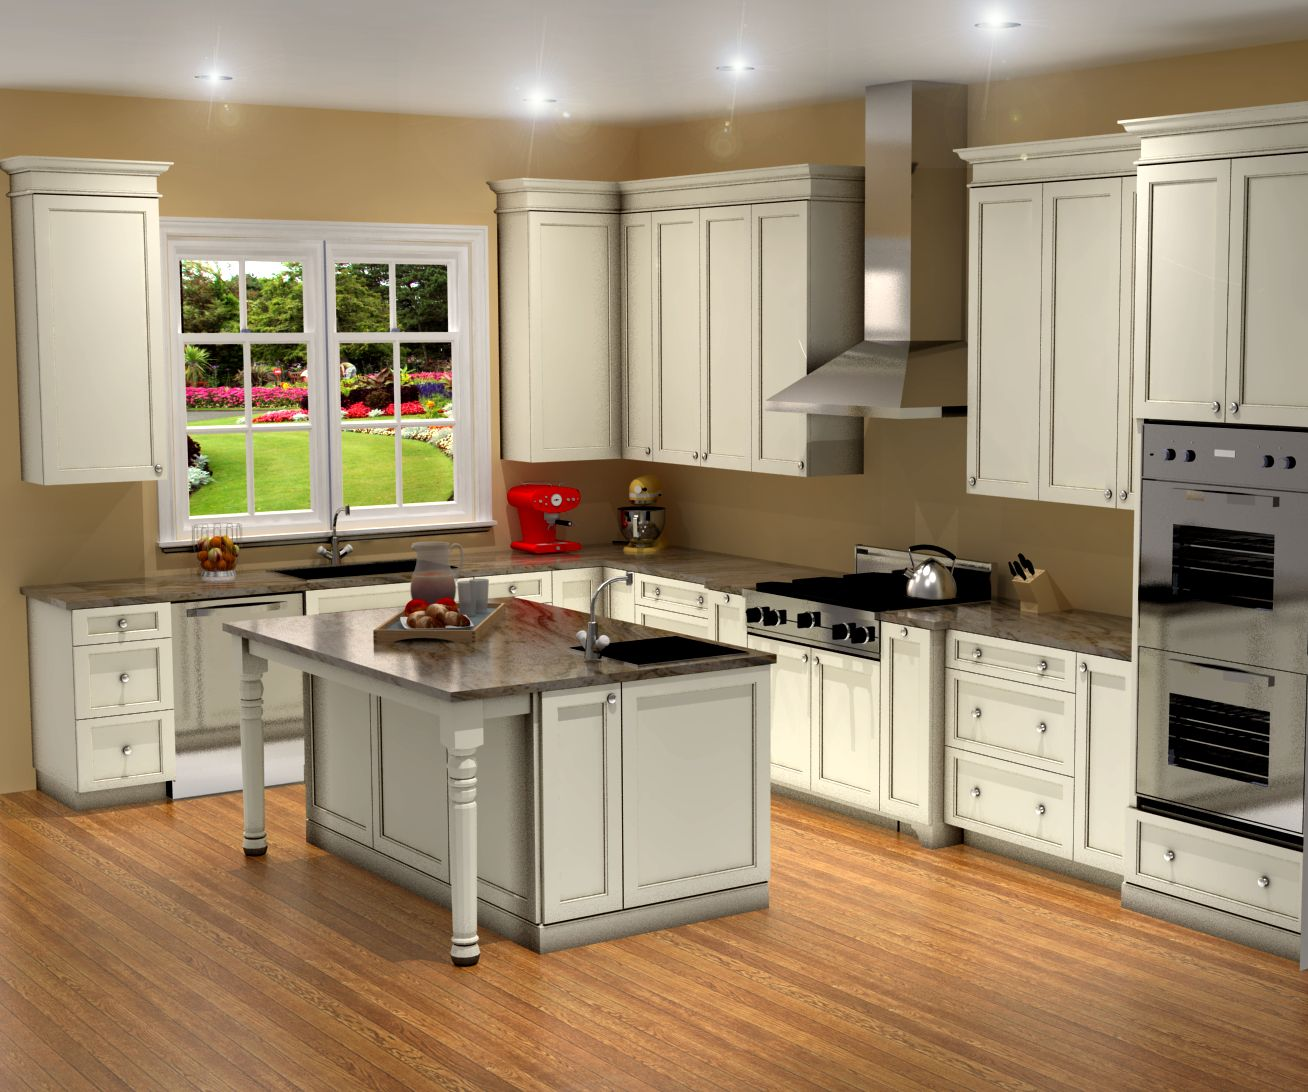 Traditional white kitchen design 3d rendering nick for Kitchen designs pics